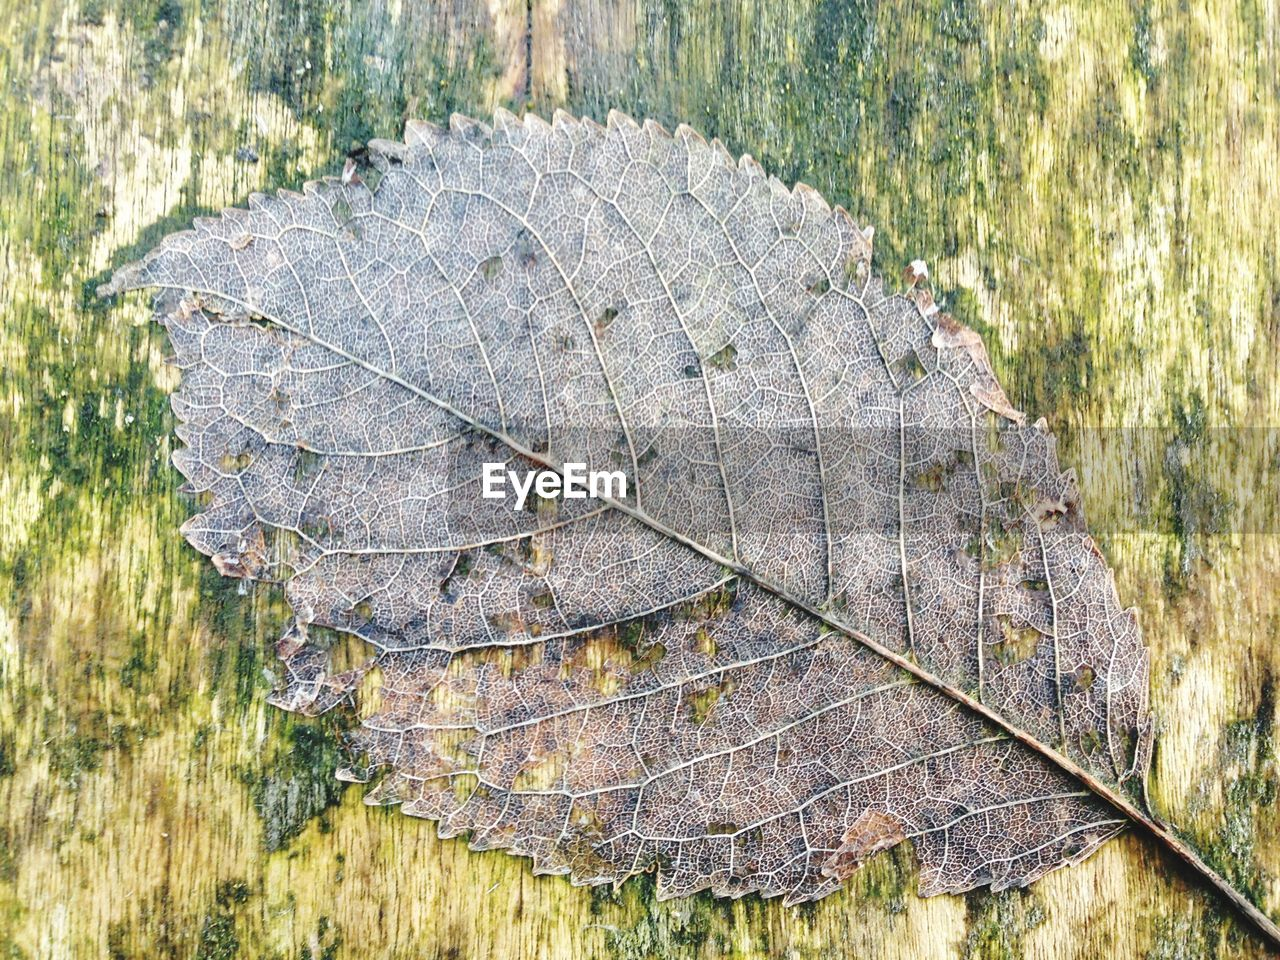 plant, nature, day, close-up, leaf vein, dry, no people, leaf, plant part, outdoors, wood - material, natural pattern, autumn, textured, tree, directly above, vulnerability, change, high angle view, land, bark, leaves